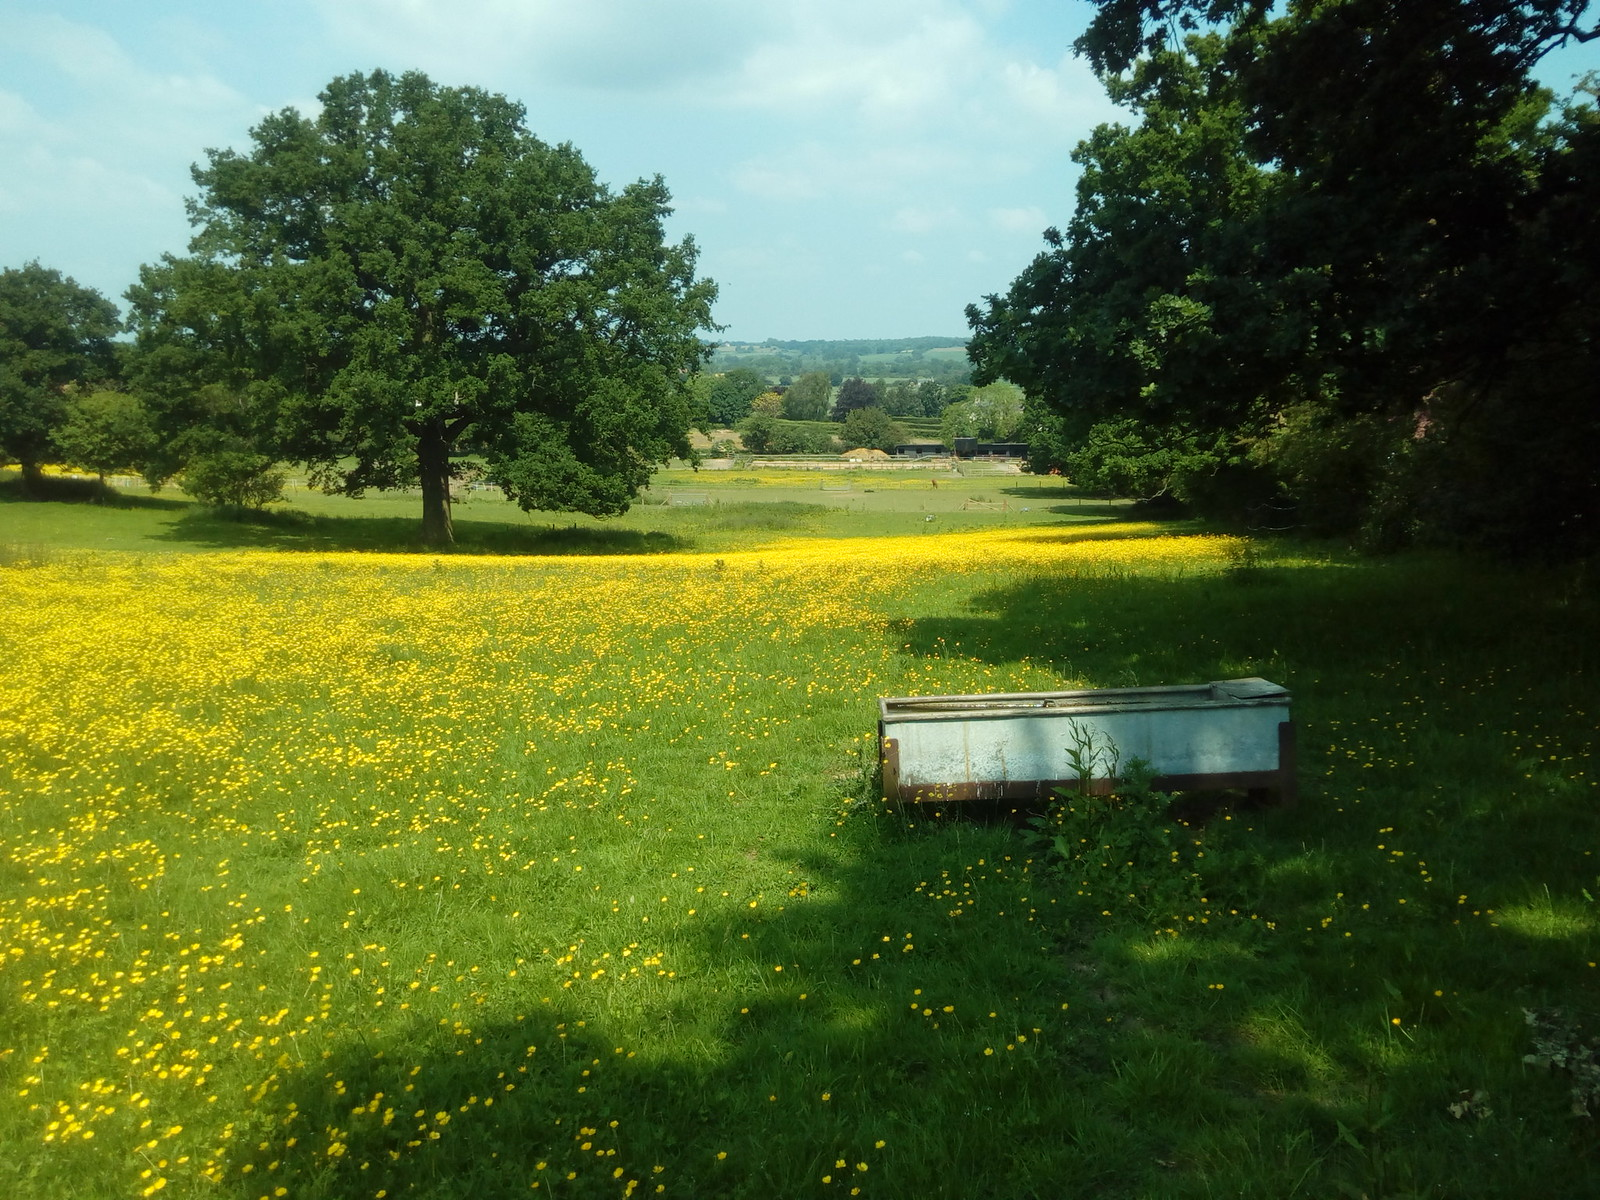 Oak, buttercups and trough Stour valley in the distance